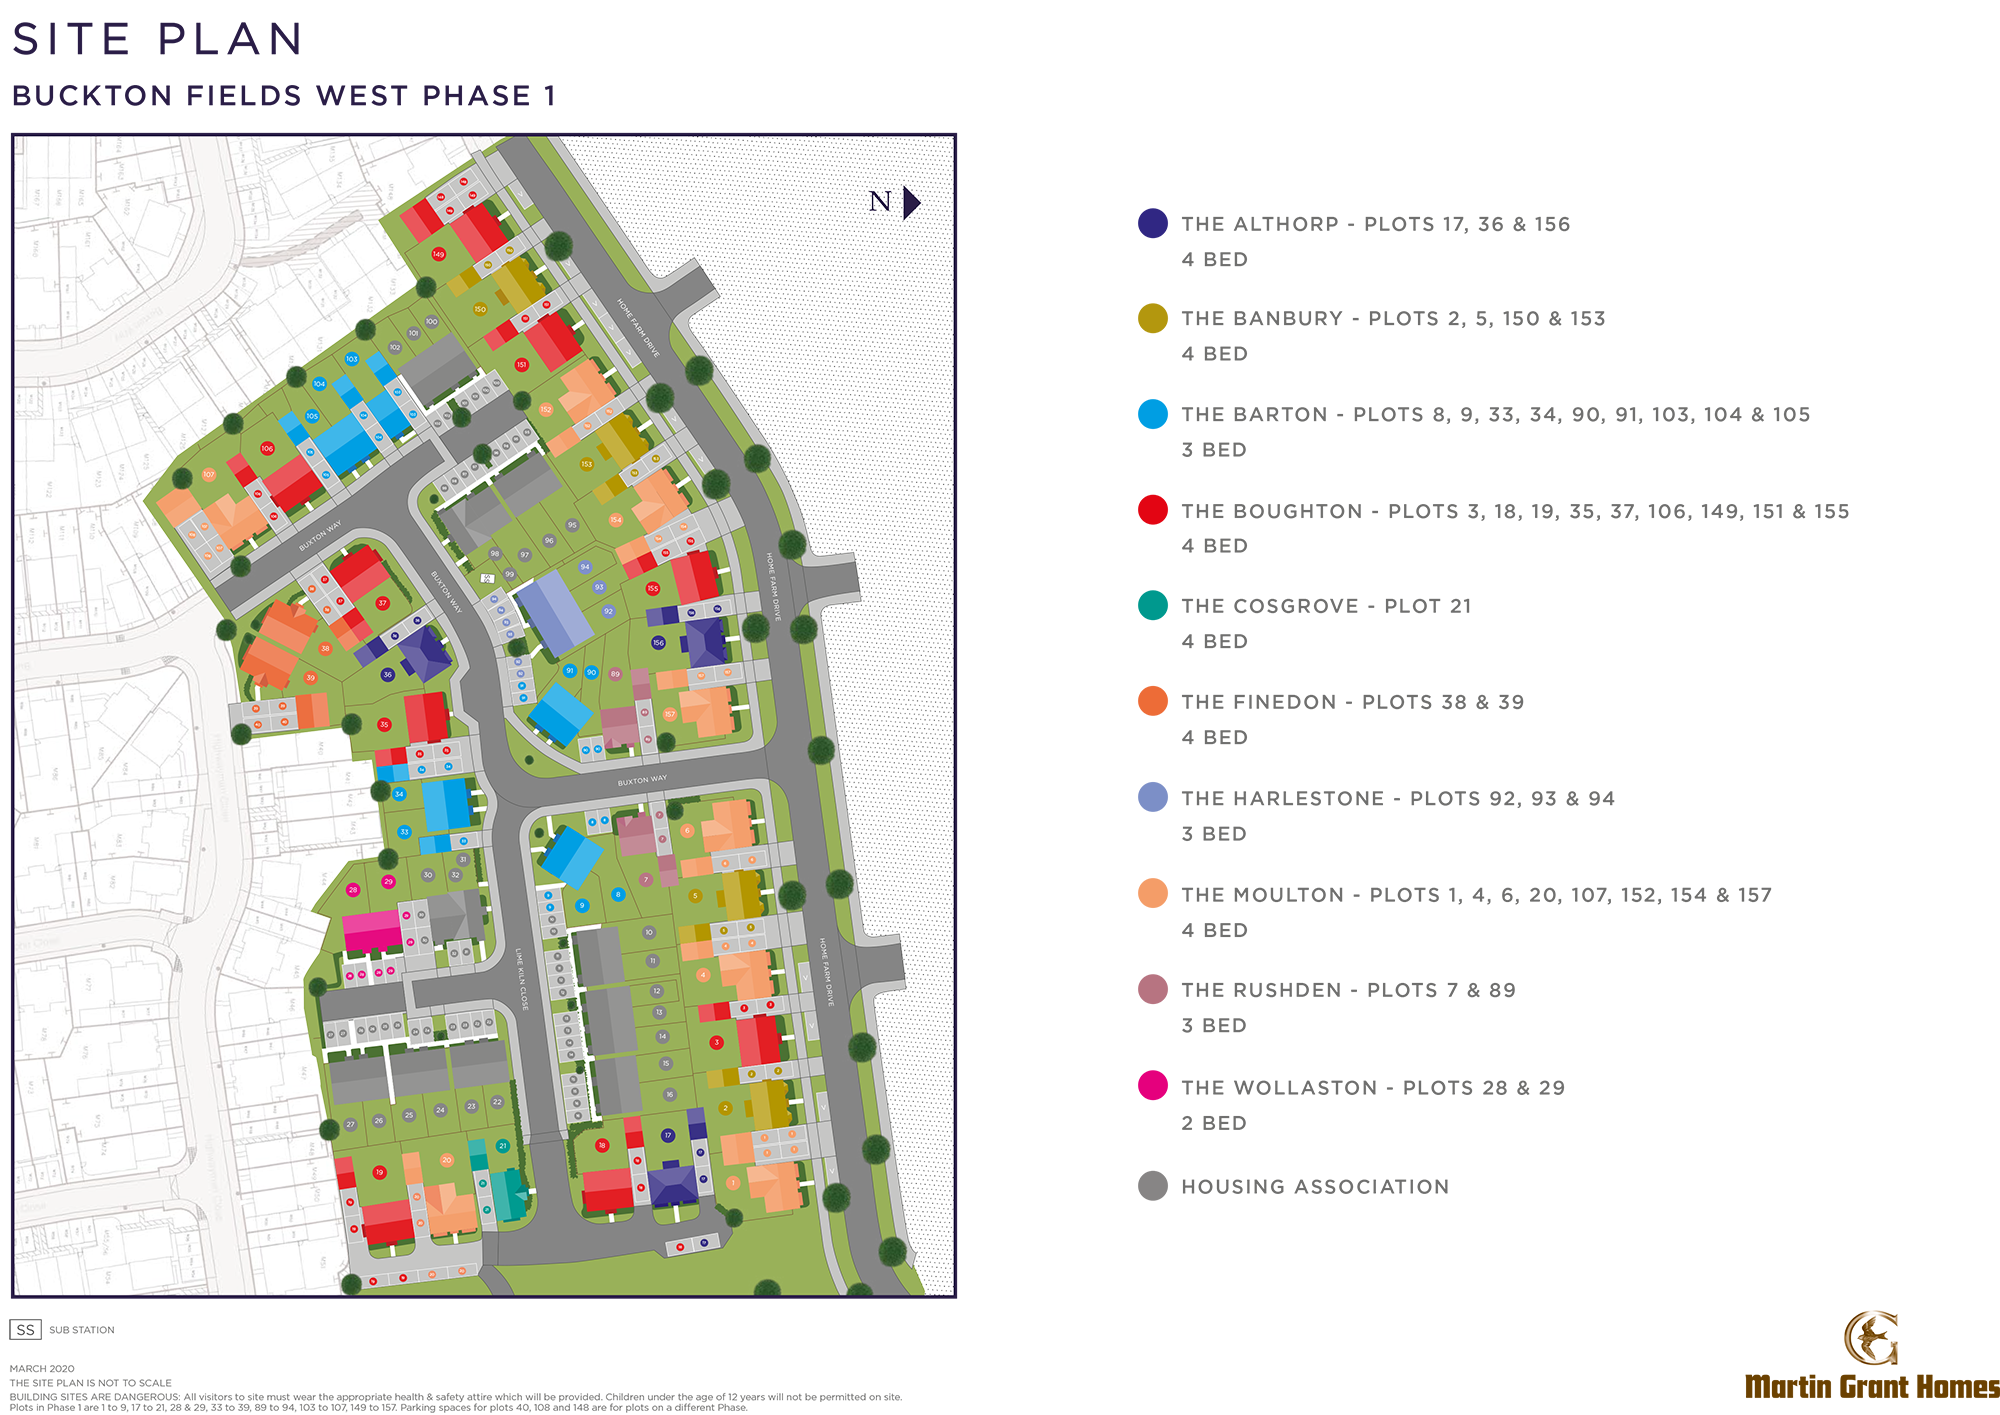 Plot 92 – The Harlestone Siteplan